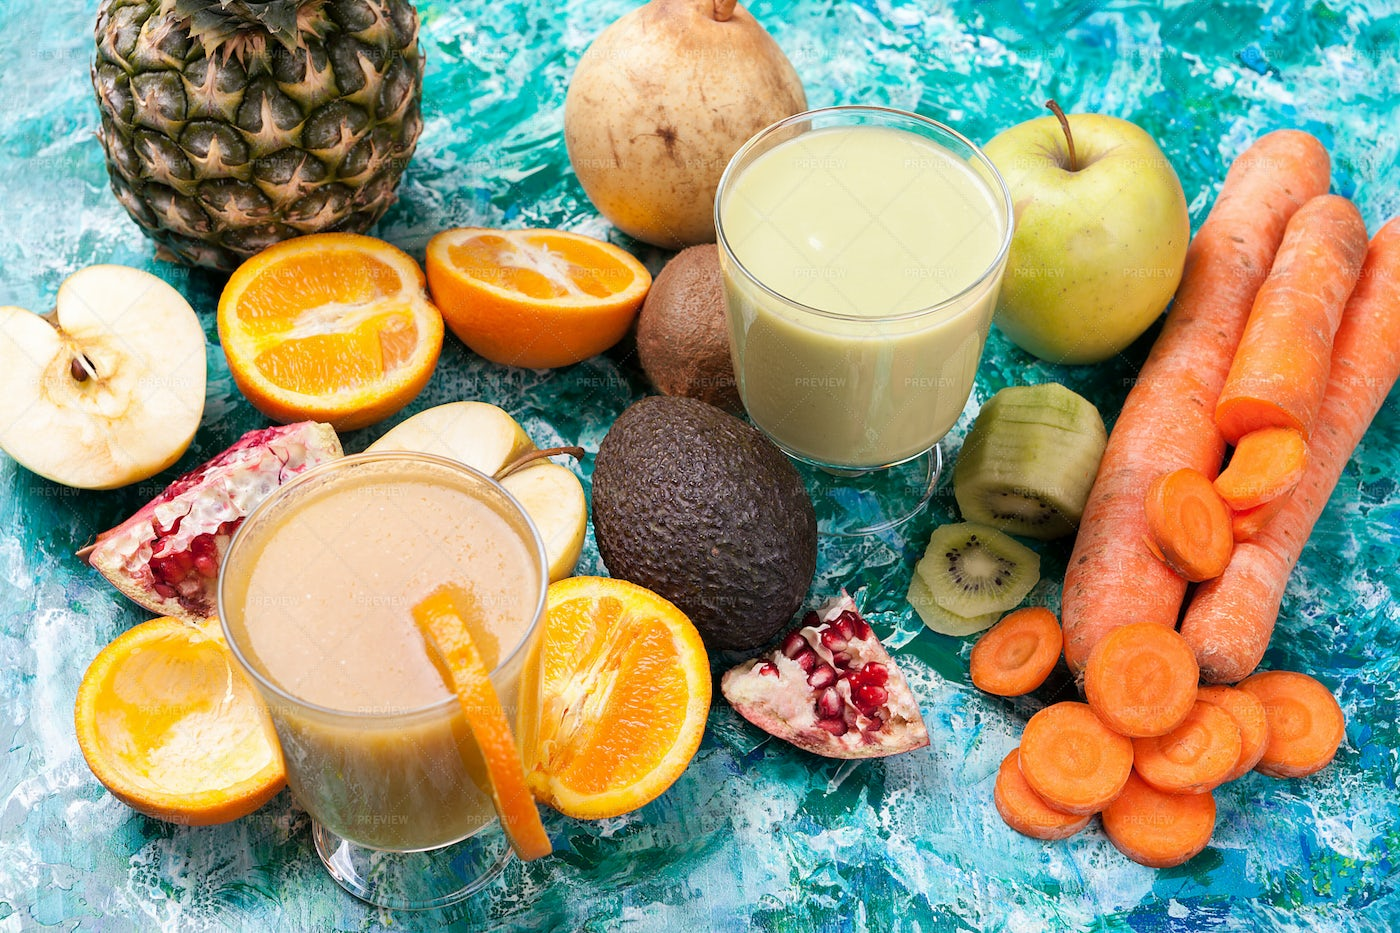 Detox Smoothies Surrounded By Fruits: Stock Photos